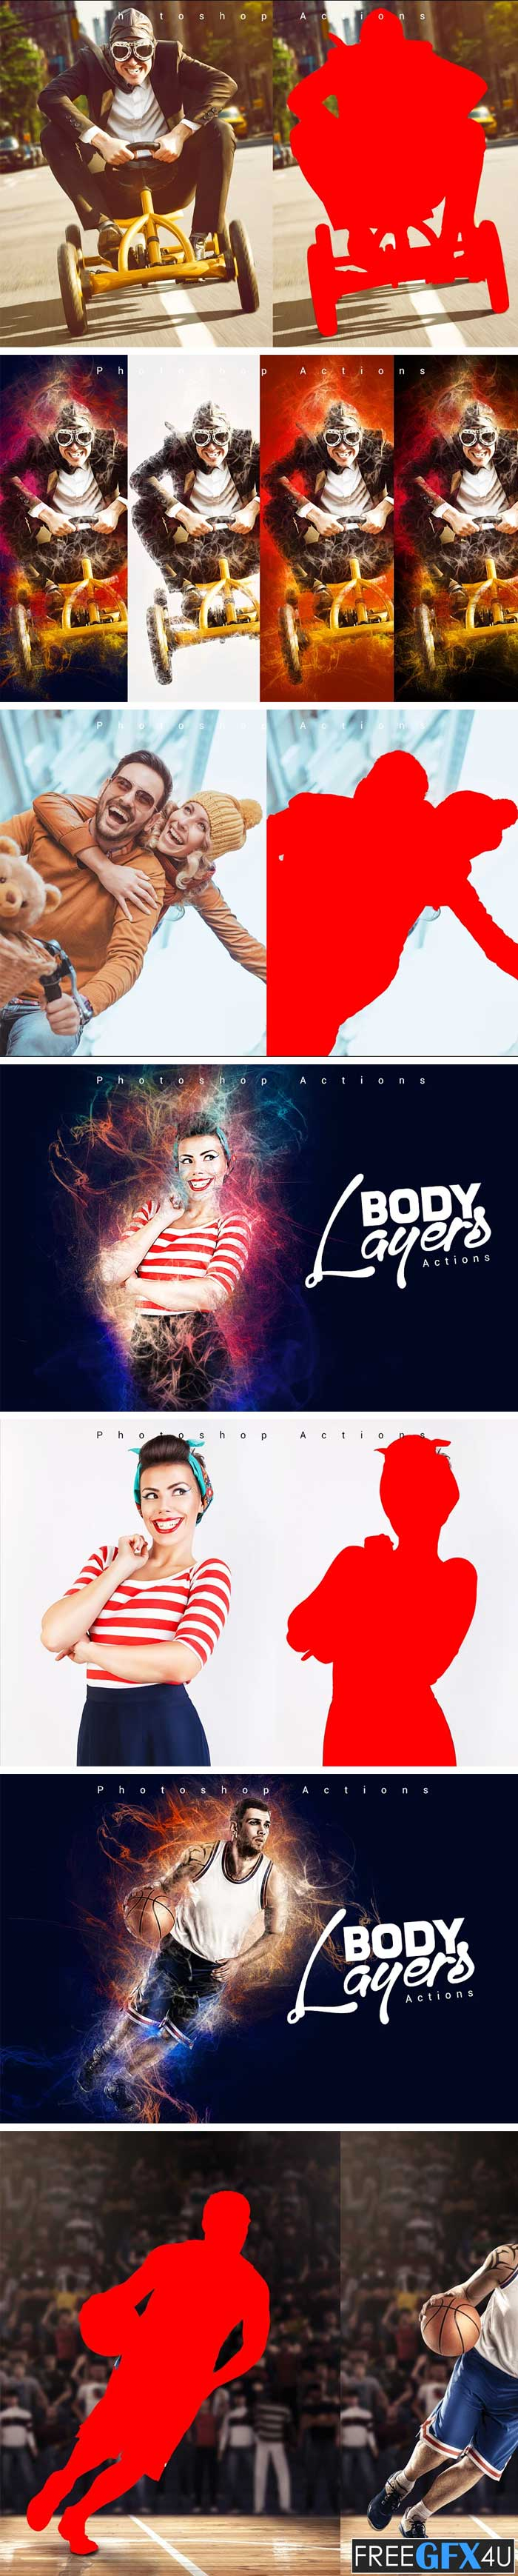 CreativeMarket - Body Layers Photoshop Actions